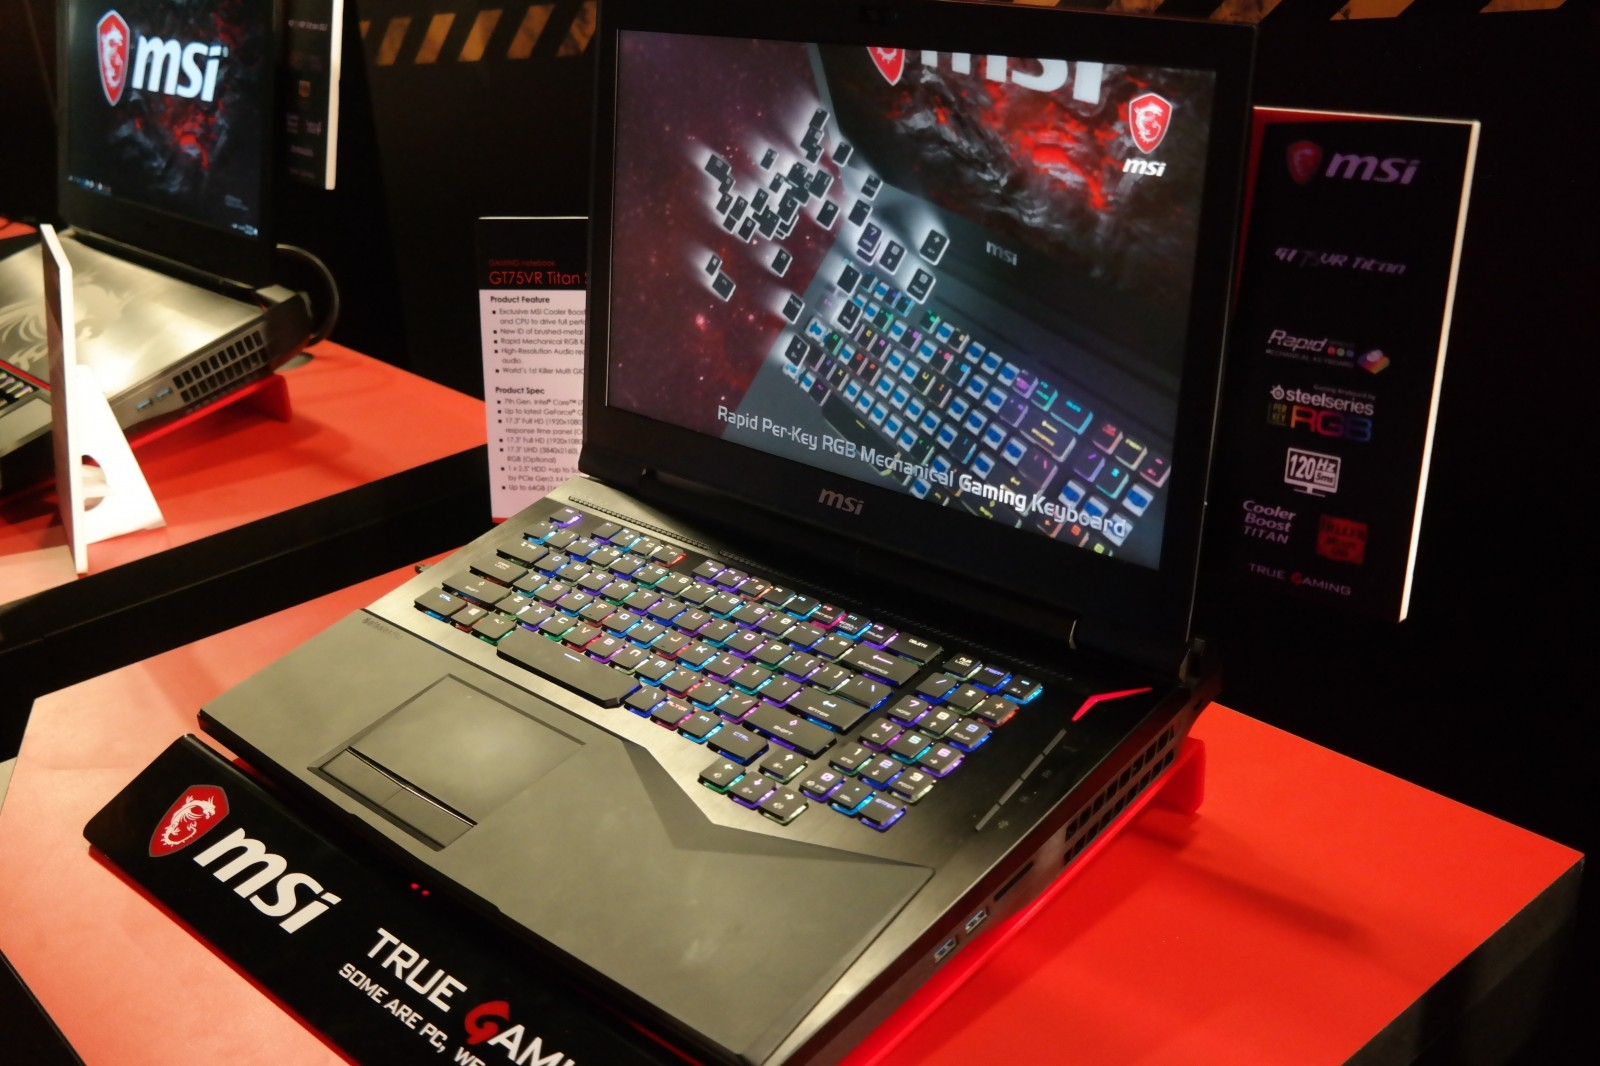 msi titan gamer laptop